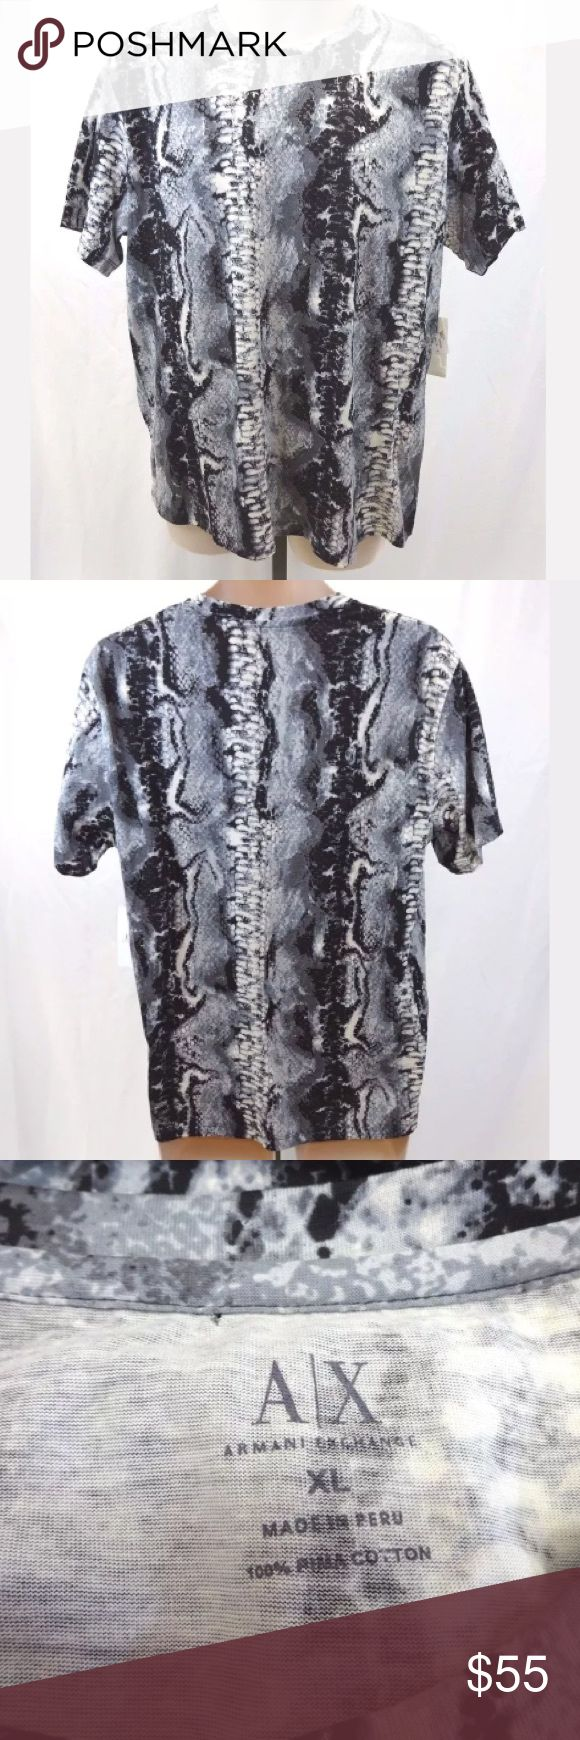 Armani exchange men's XL t-shirt NWT gray snake Armani Exchange men's t-shirt Color (according to tag) is called Smoke - Gray, black and white snakeprint design Men's Size XL 100% Pima Cotton Measures approximately: chest 45 inches, shoulders 19 inches, sleeves 8.25 inches, length 27.5 inches Shirt is new with tags, however there is a small pinhole near the top where the collar is in back. It may have been from another tag or pin.  669-55 A/X Armani Exchange Shirts Tees - Short Sleeve